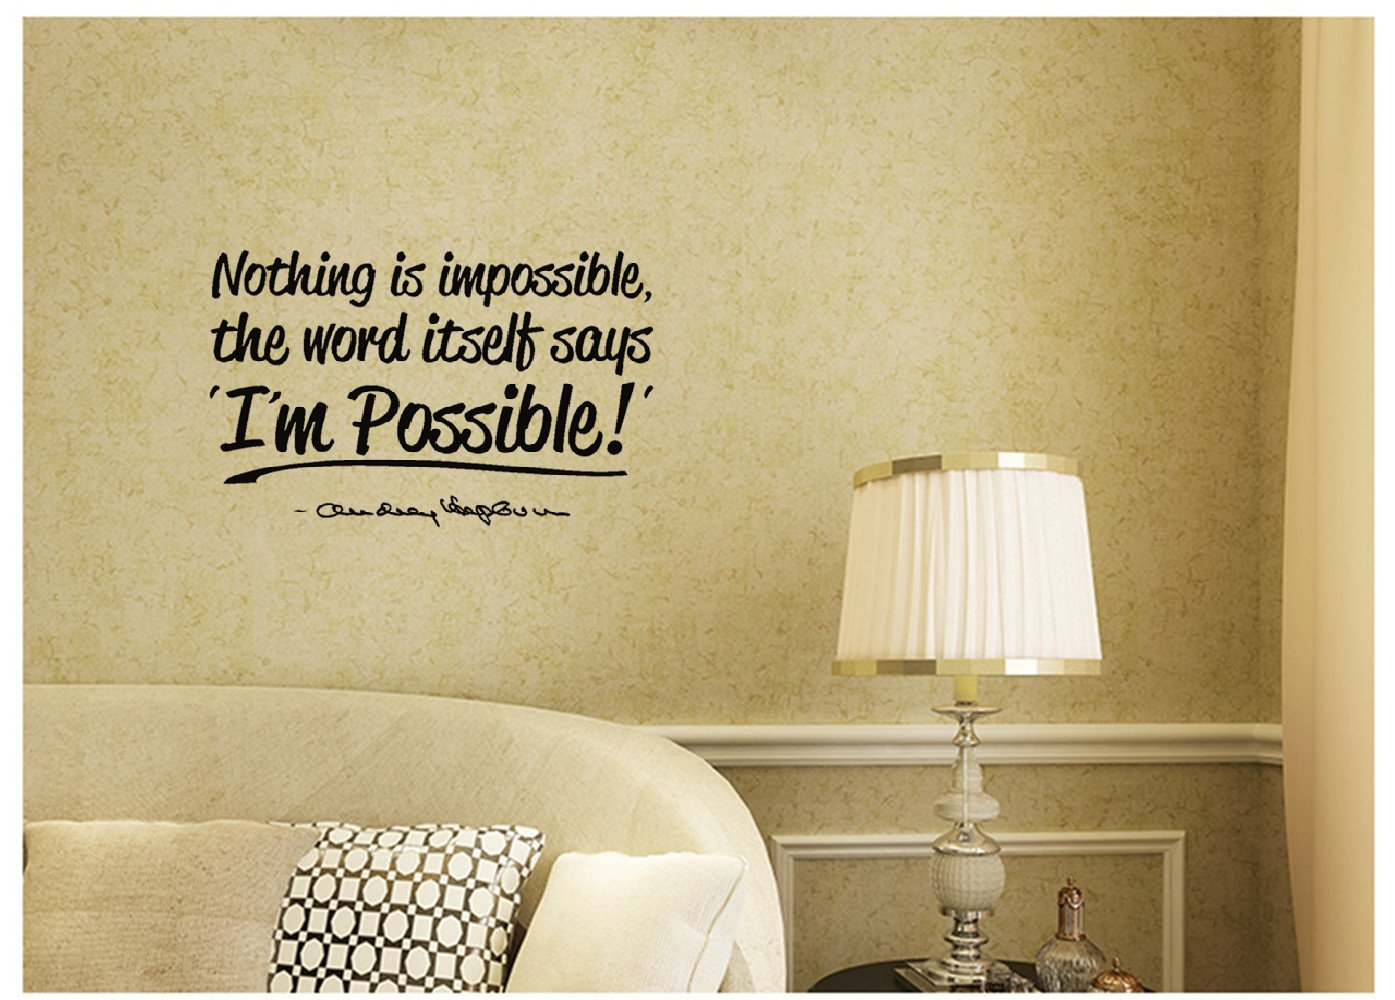 Great Christian Wall Decor Quotes Gallery - The Wall Art Decorations ...